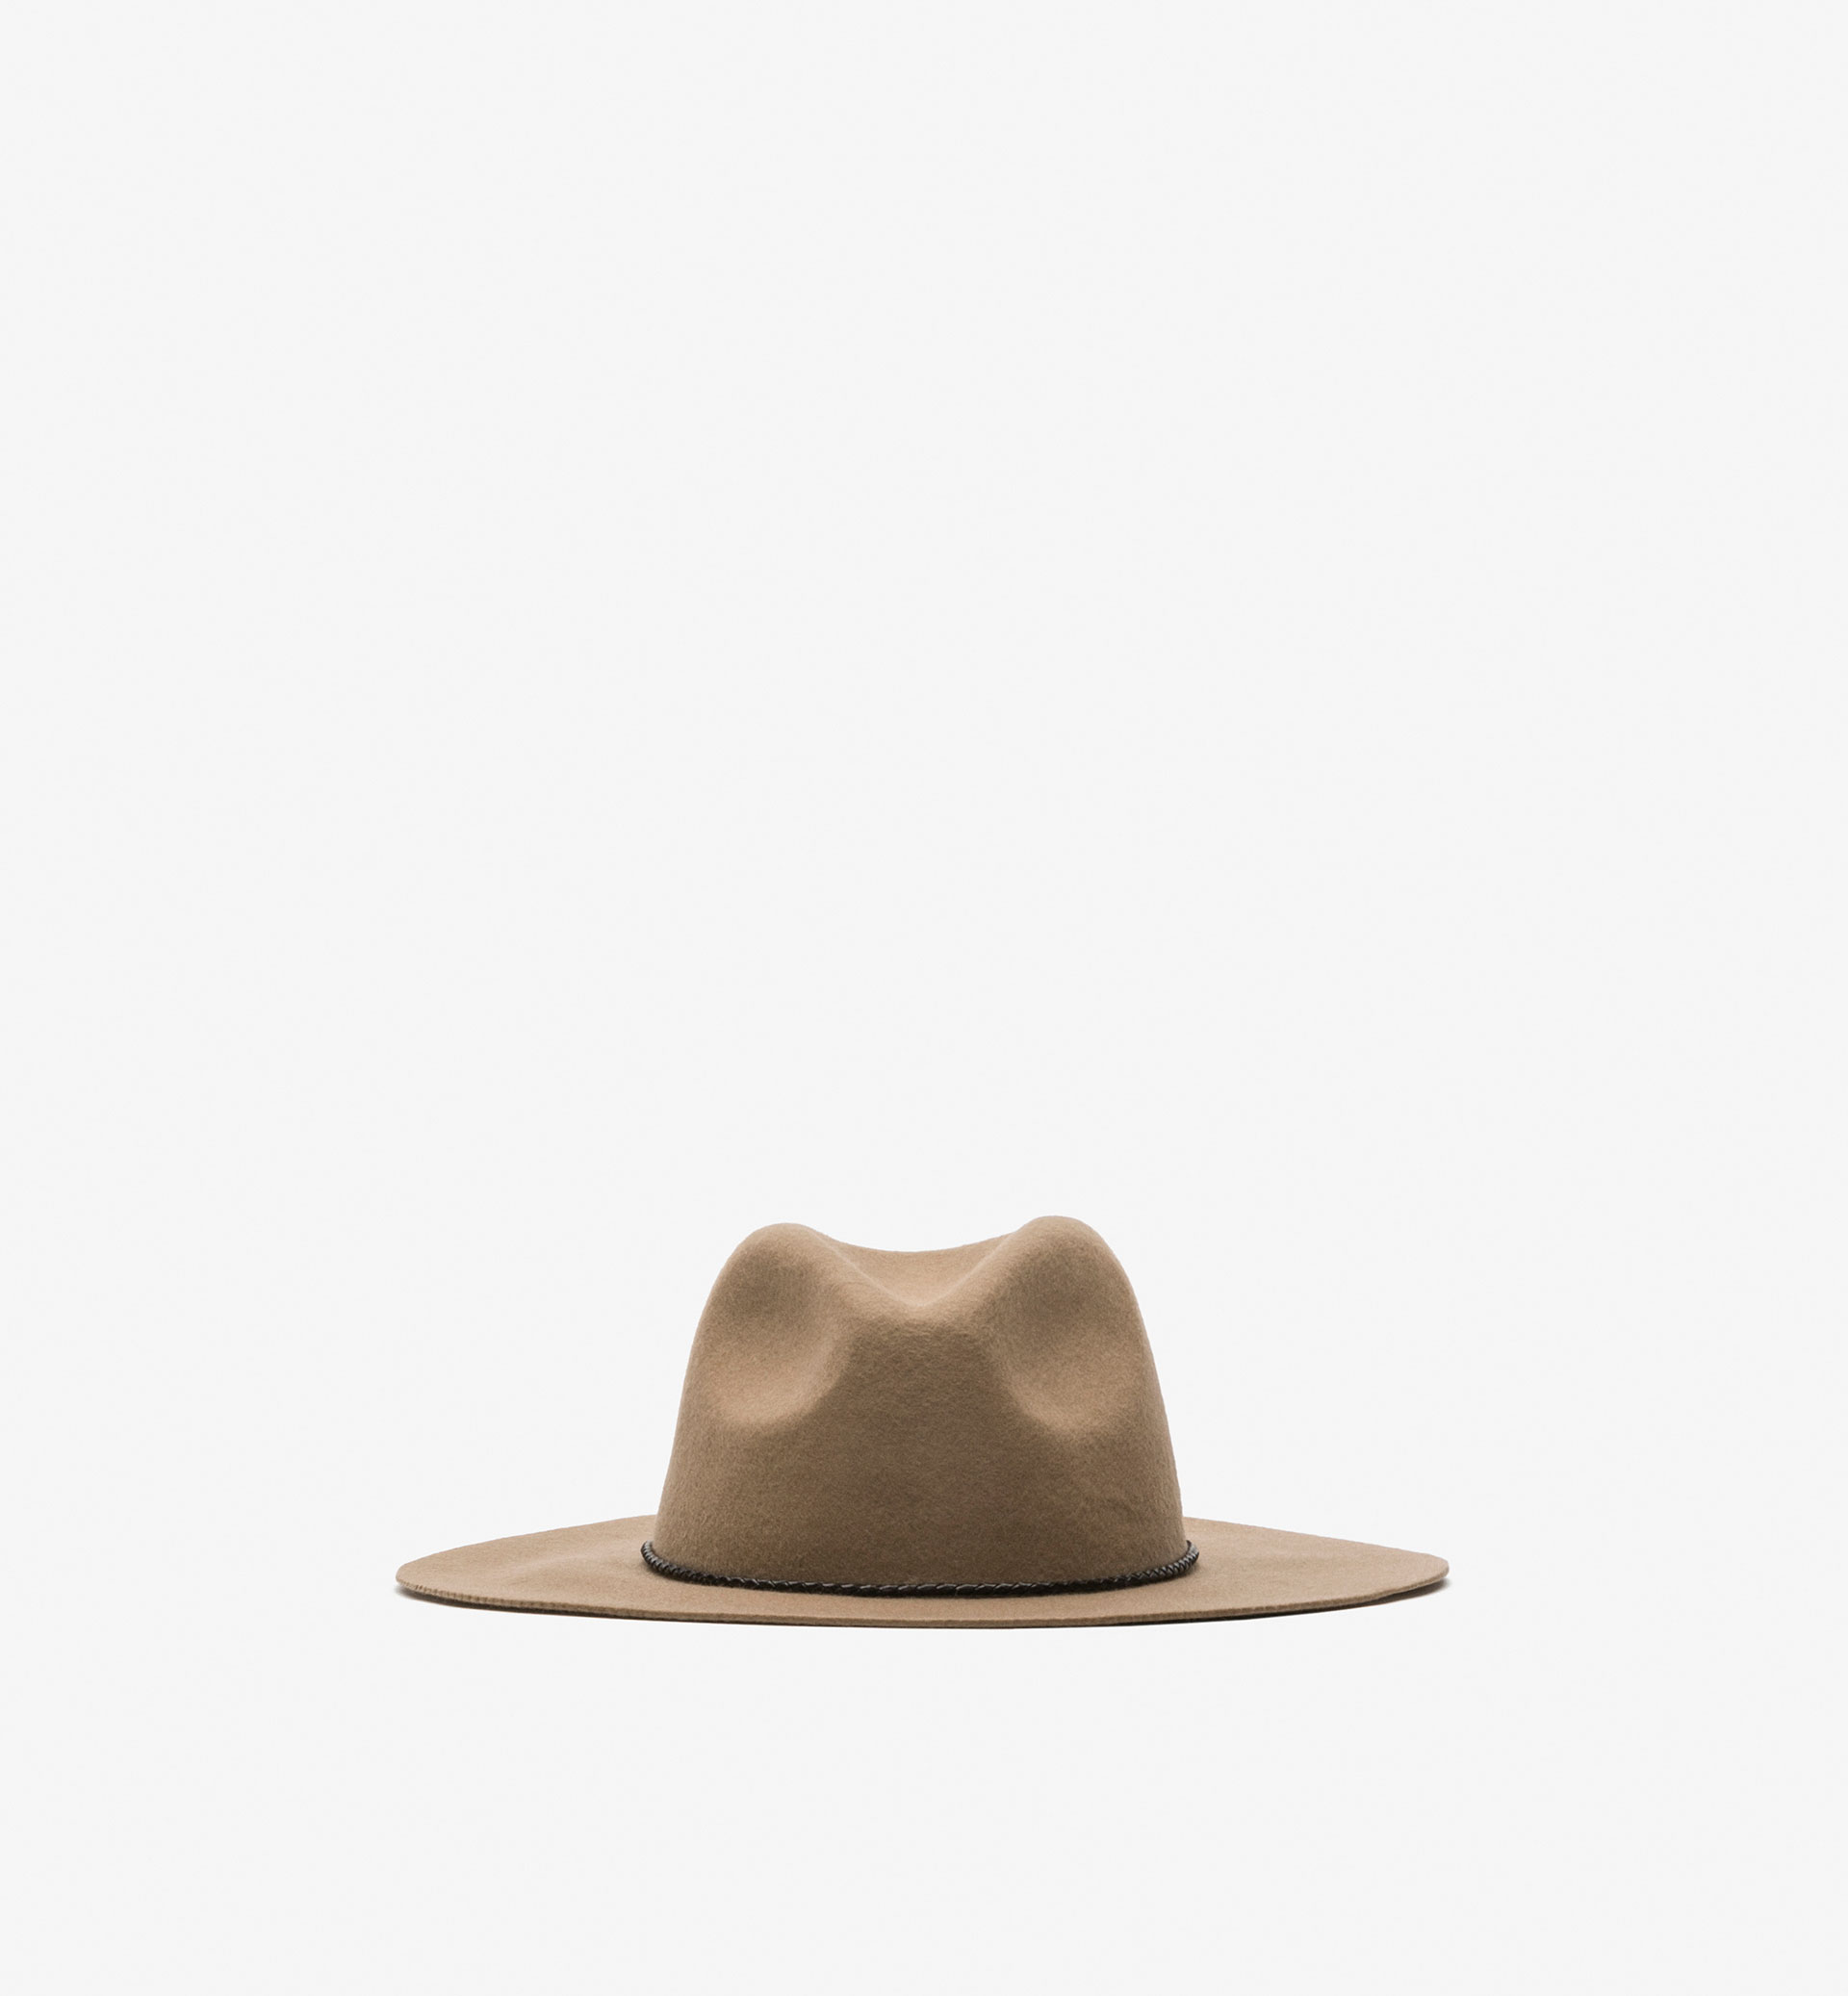 BRAIDED LEATHER CAMEL HAT